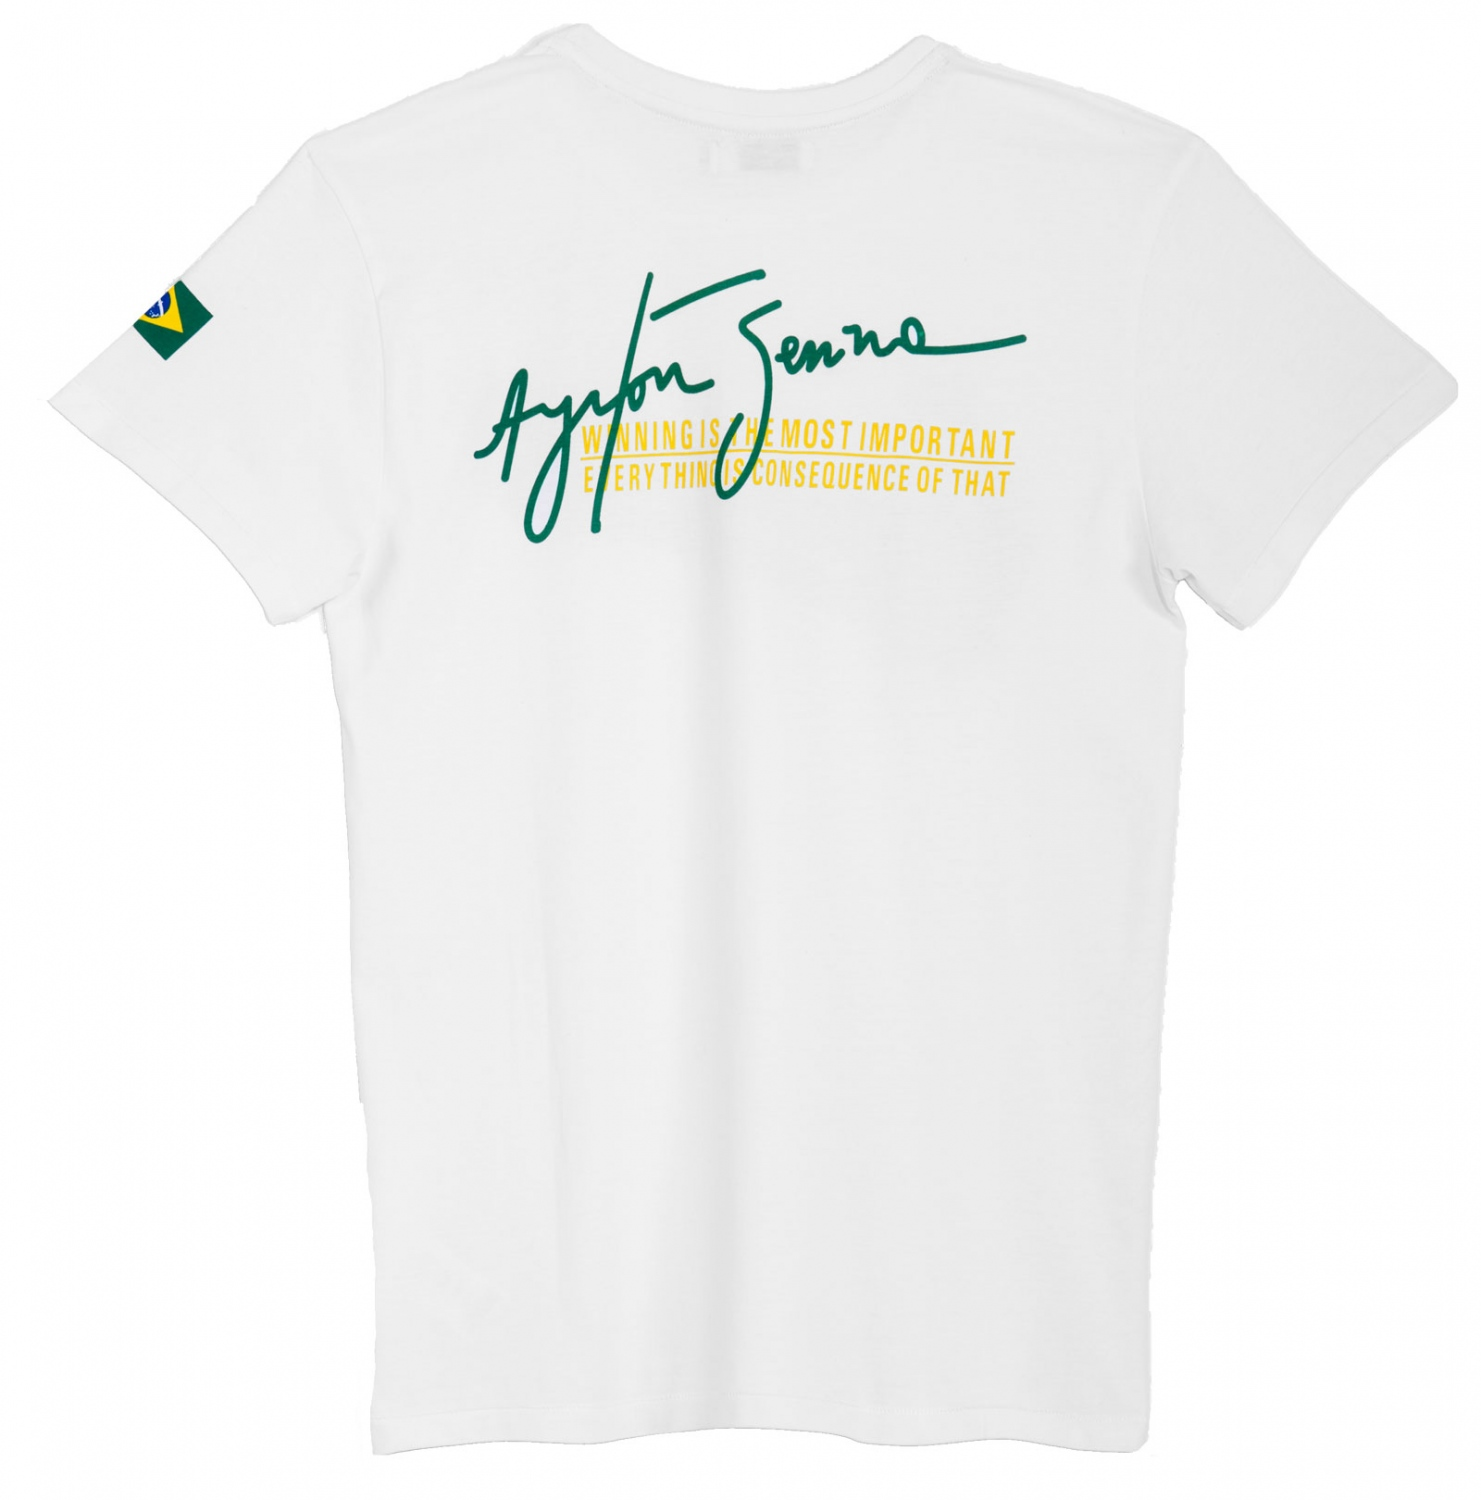 ayrton-senna-t-shirt-scooter-back